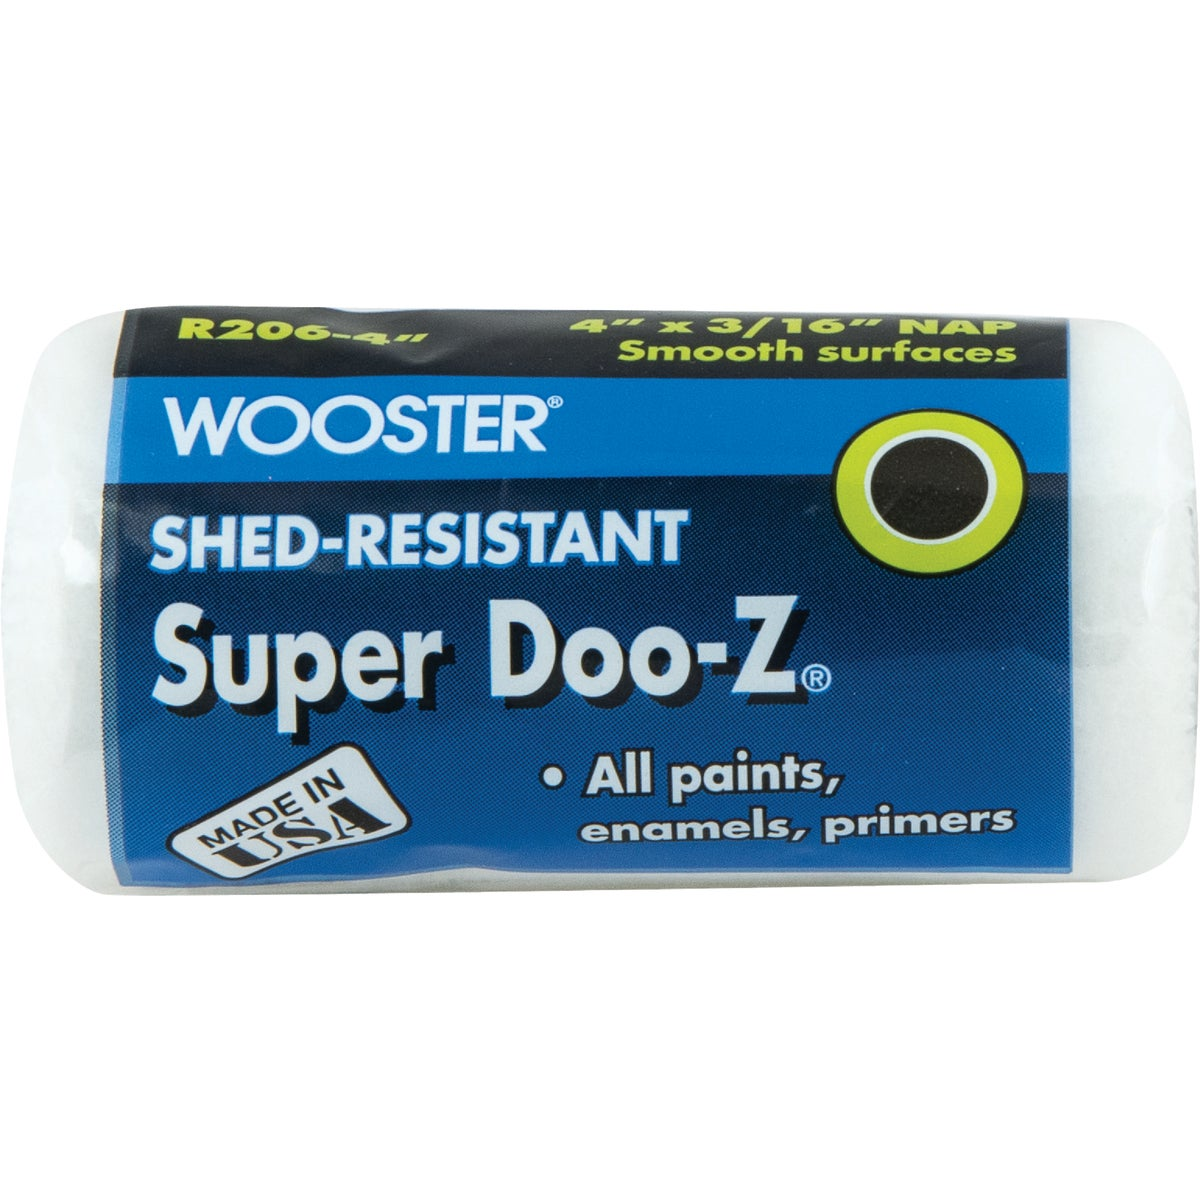 4X3/16 ROLLER COVER - R206-4 by Wooster Brush Co